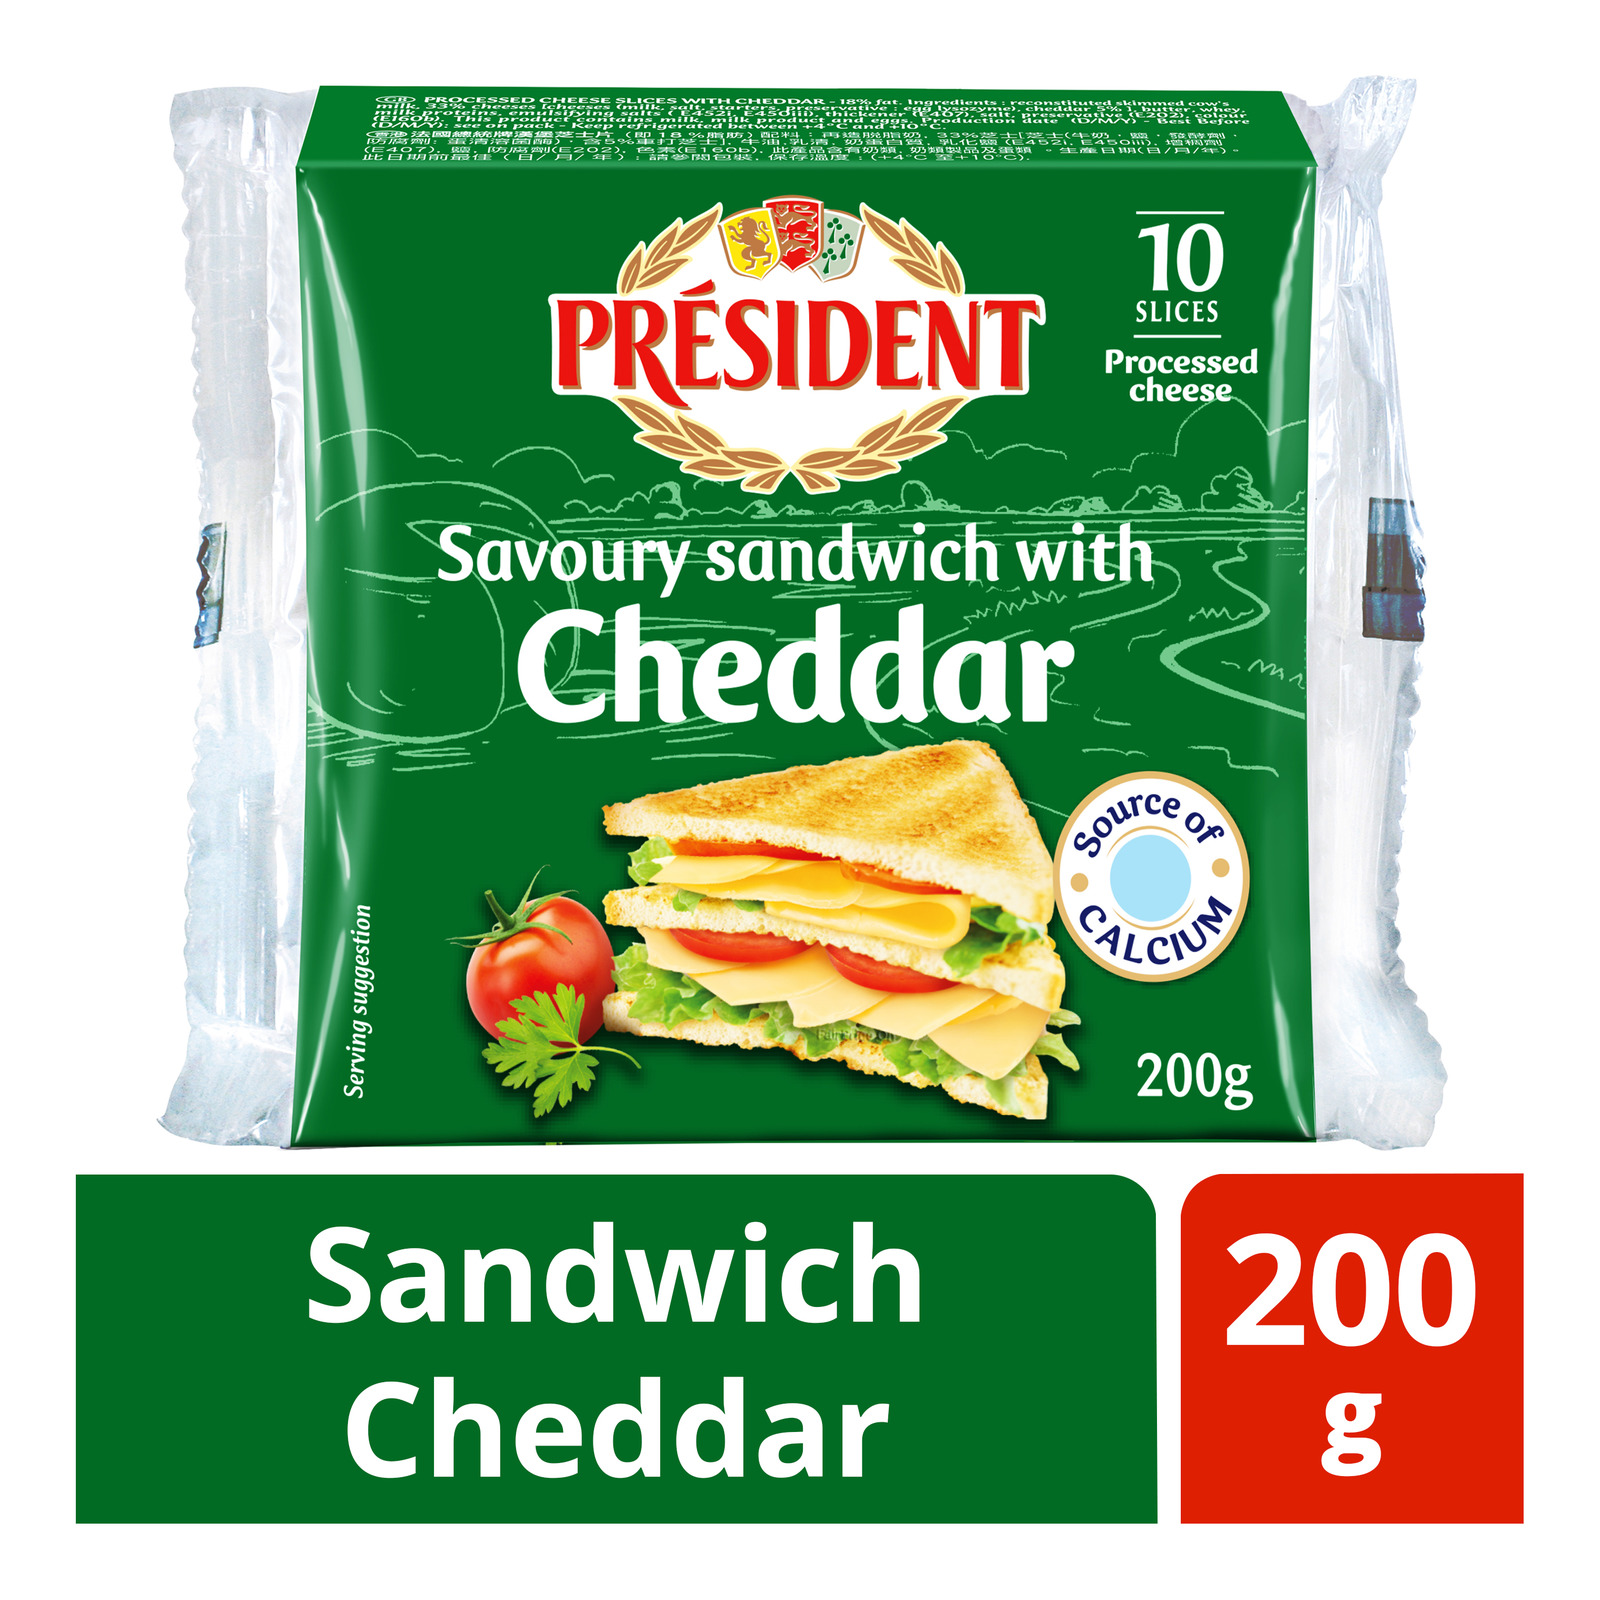 President Cheese Slices - Sandwich Cheddar